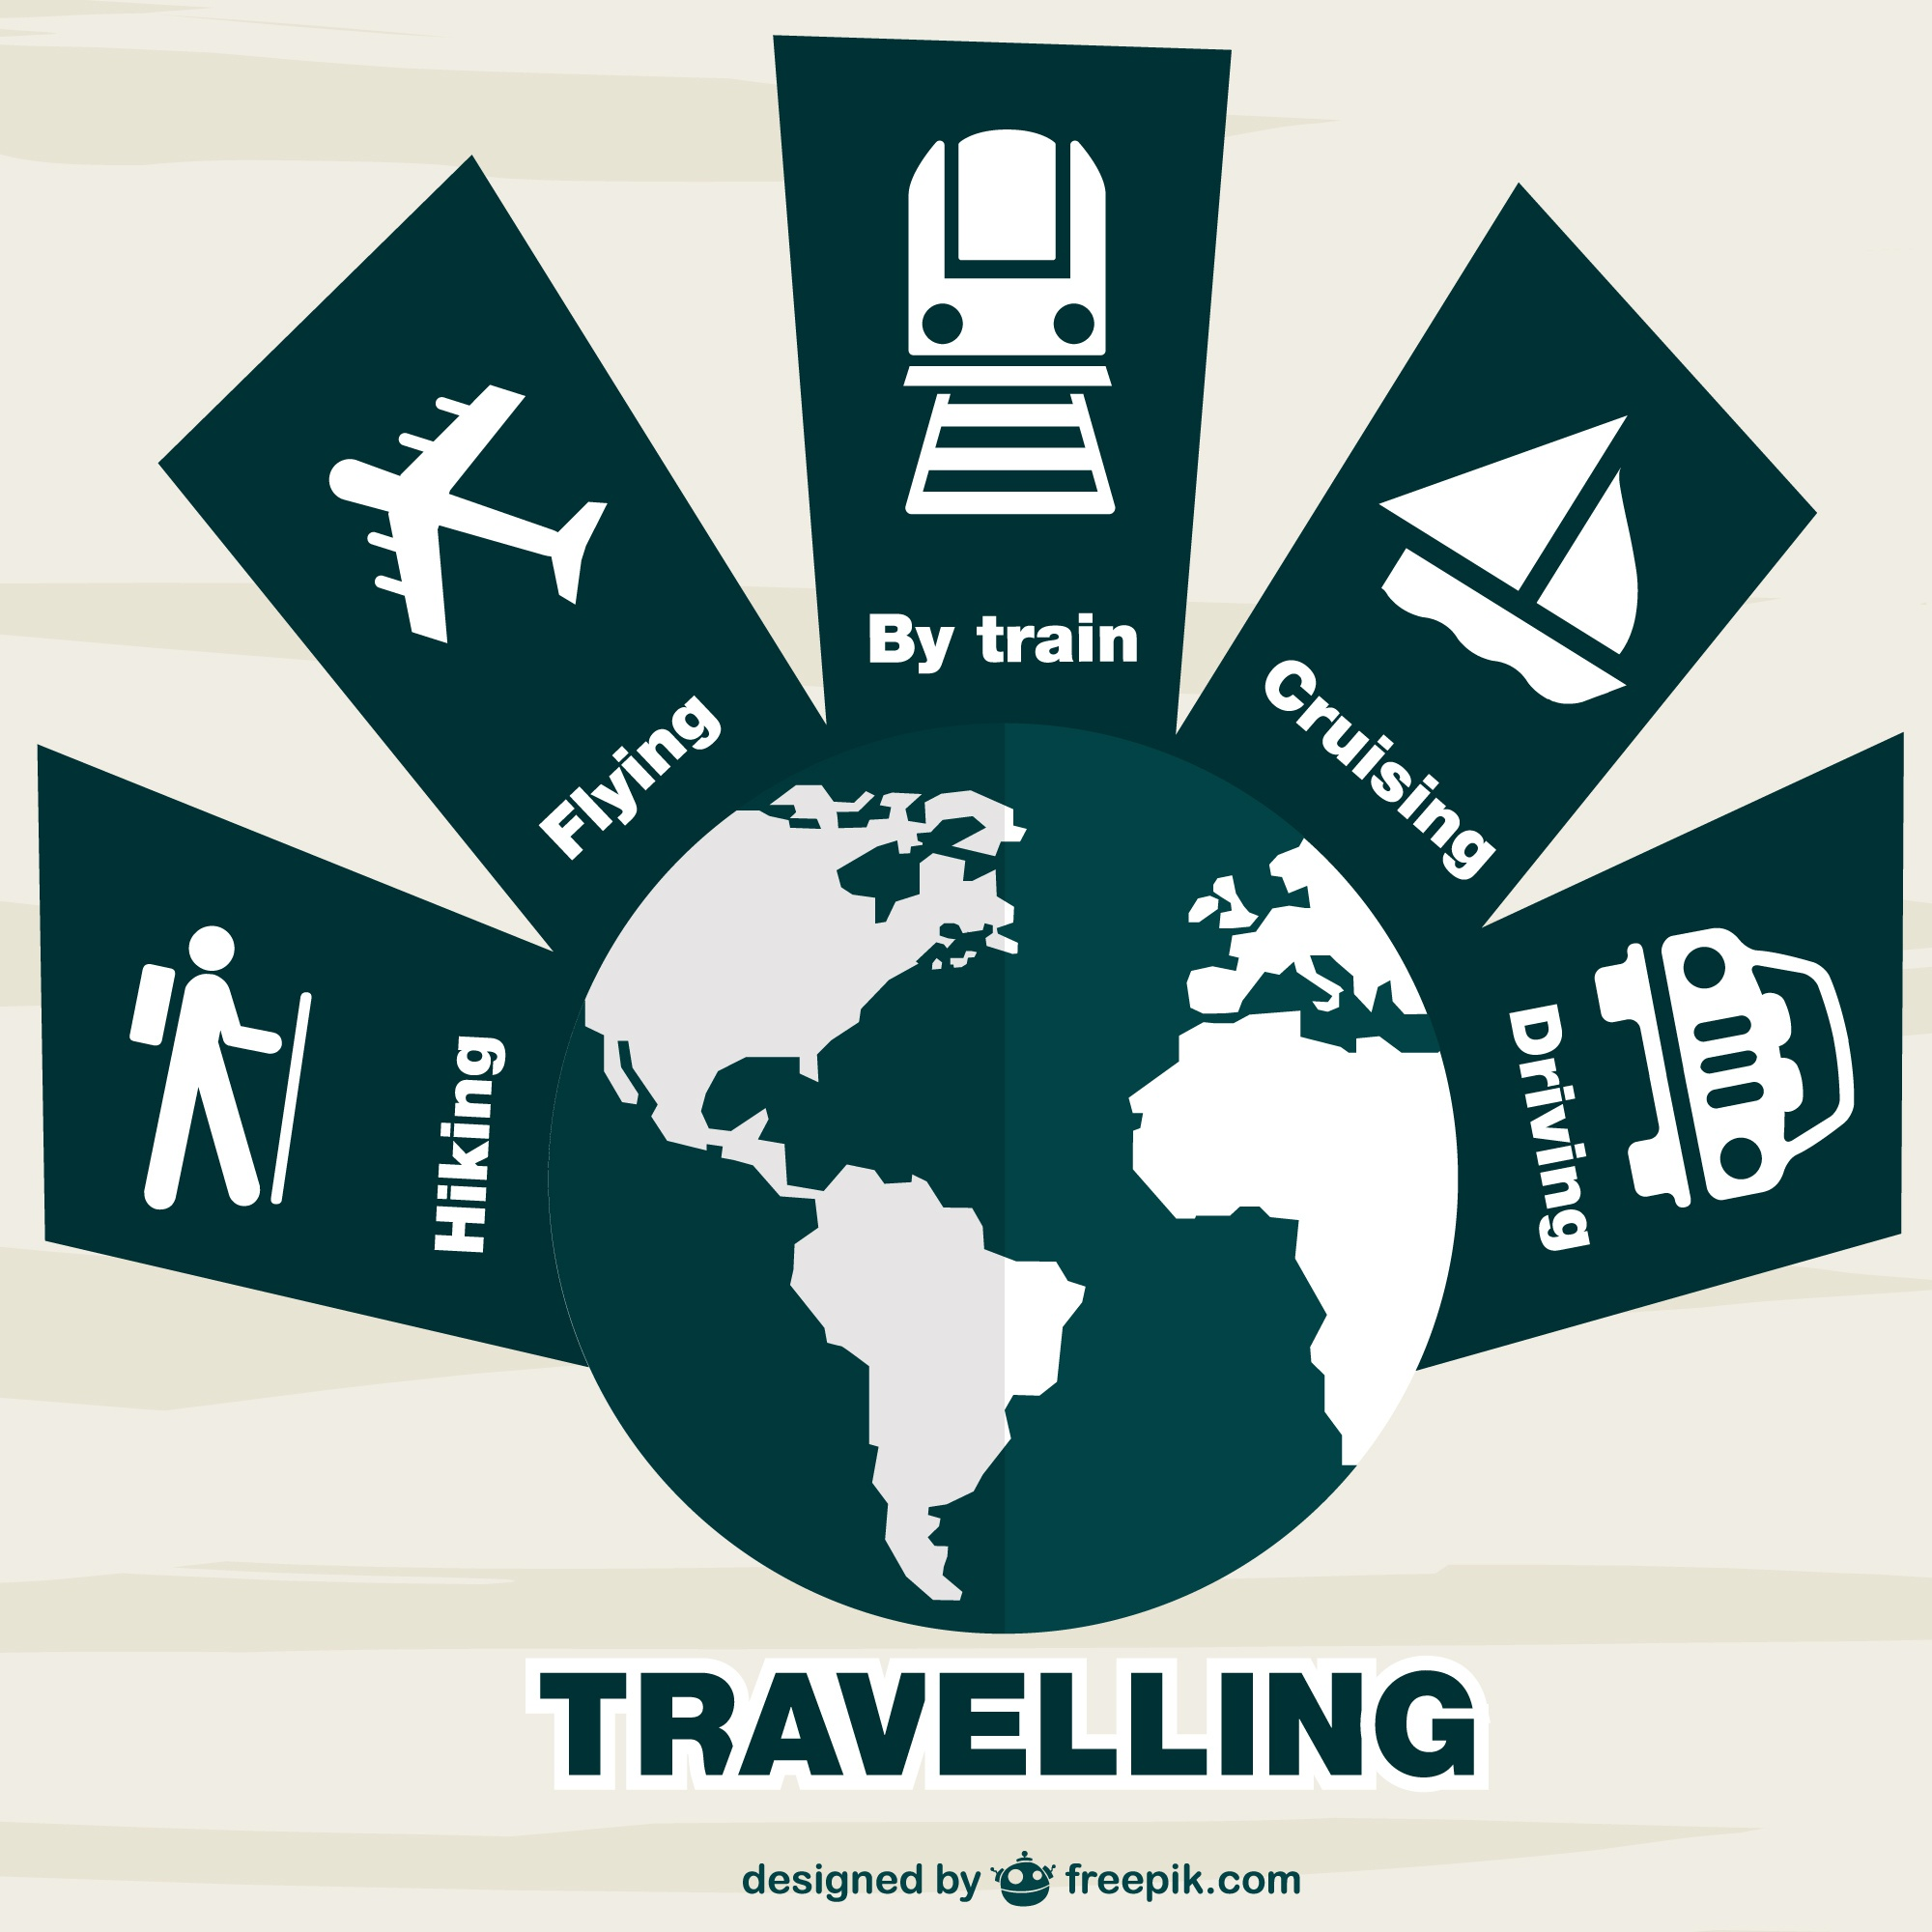 Traveling transport options vector